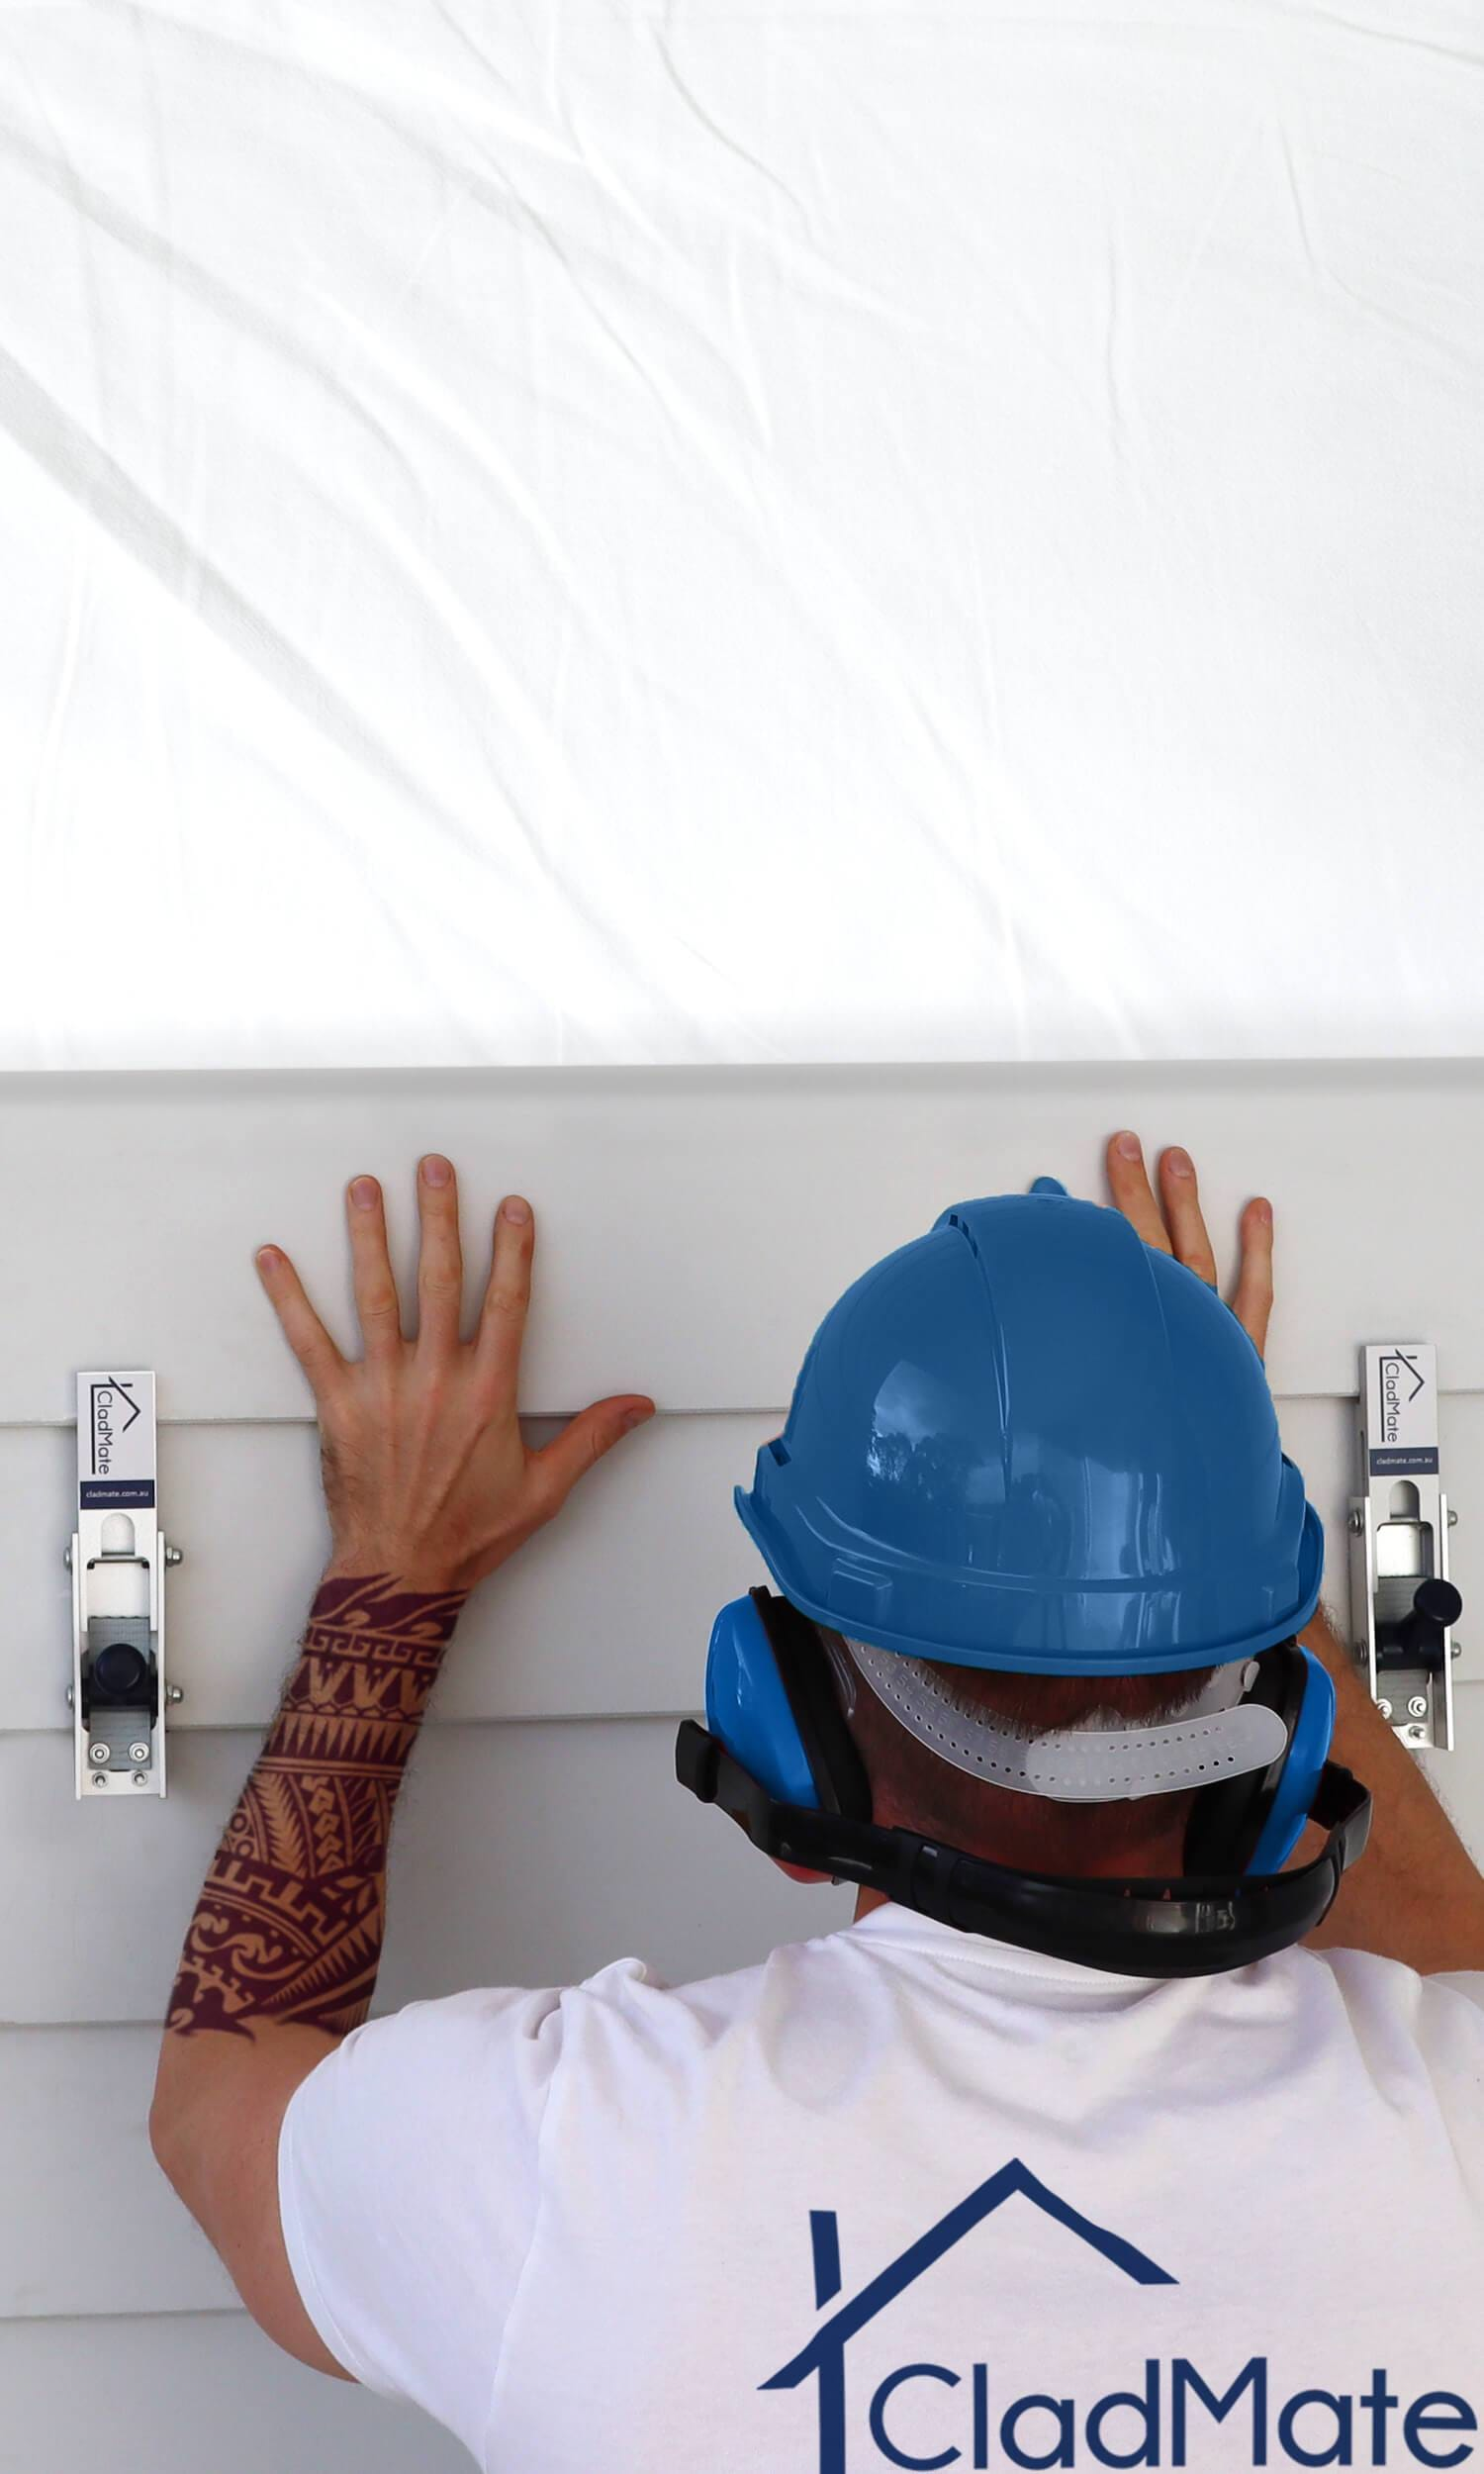 Join Thousands of Carpenters Using CladMate to Install Weatherboards Faster